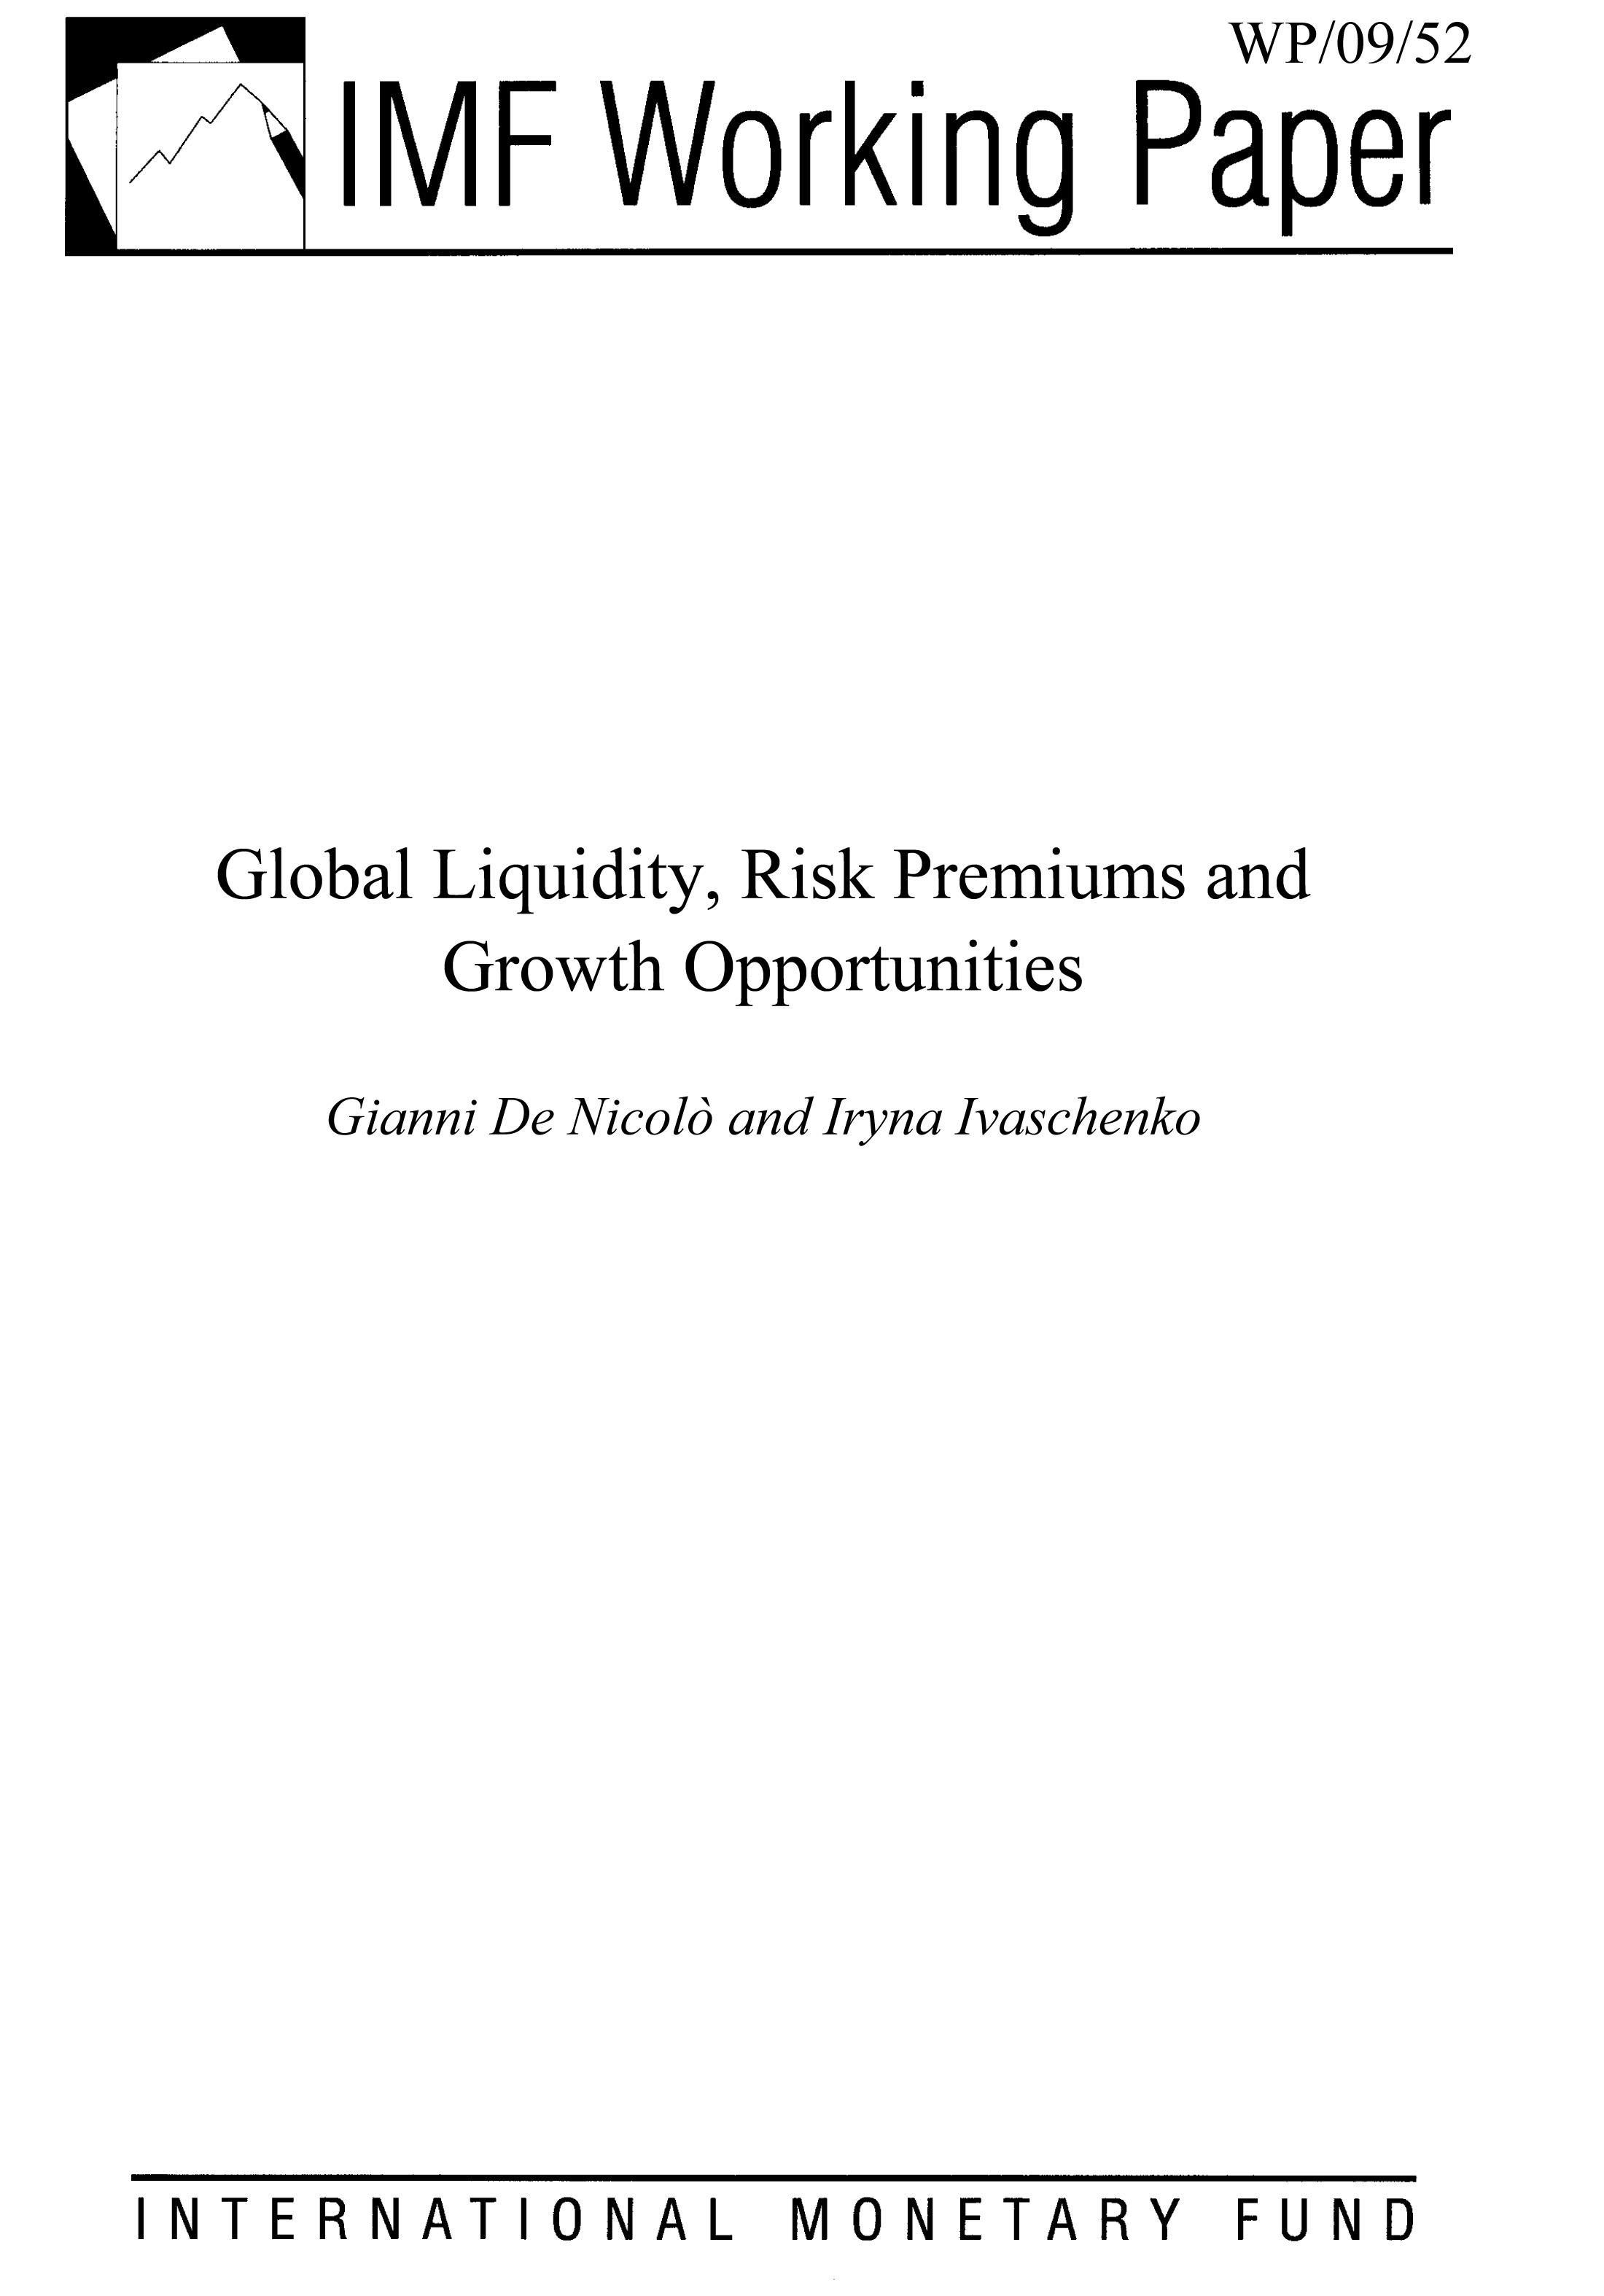 Global Liquidity, Risk Premiums and Growth Opportunities